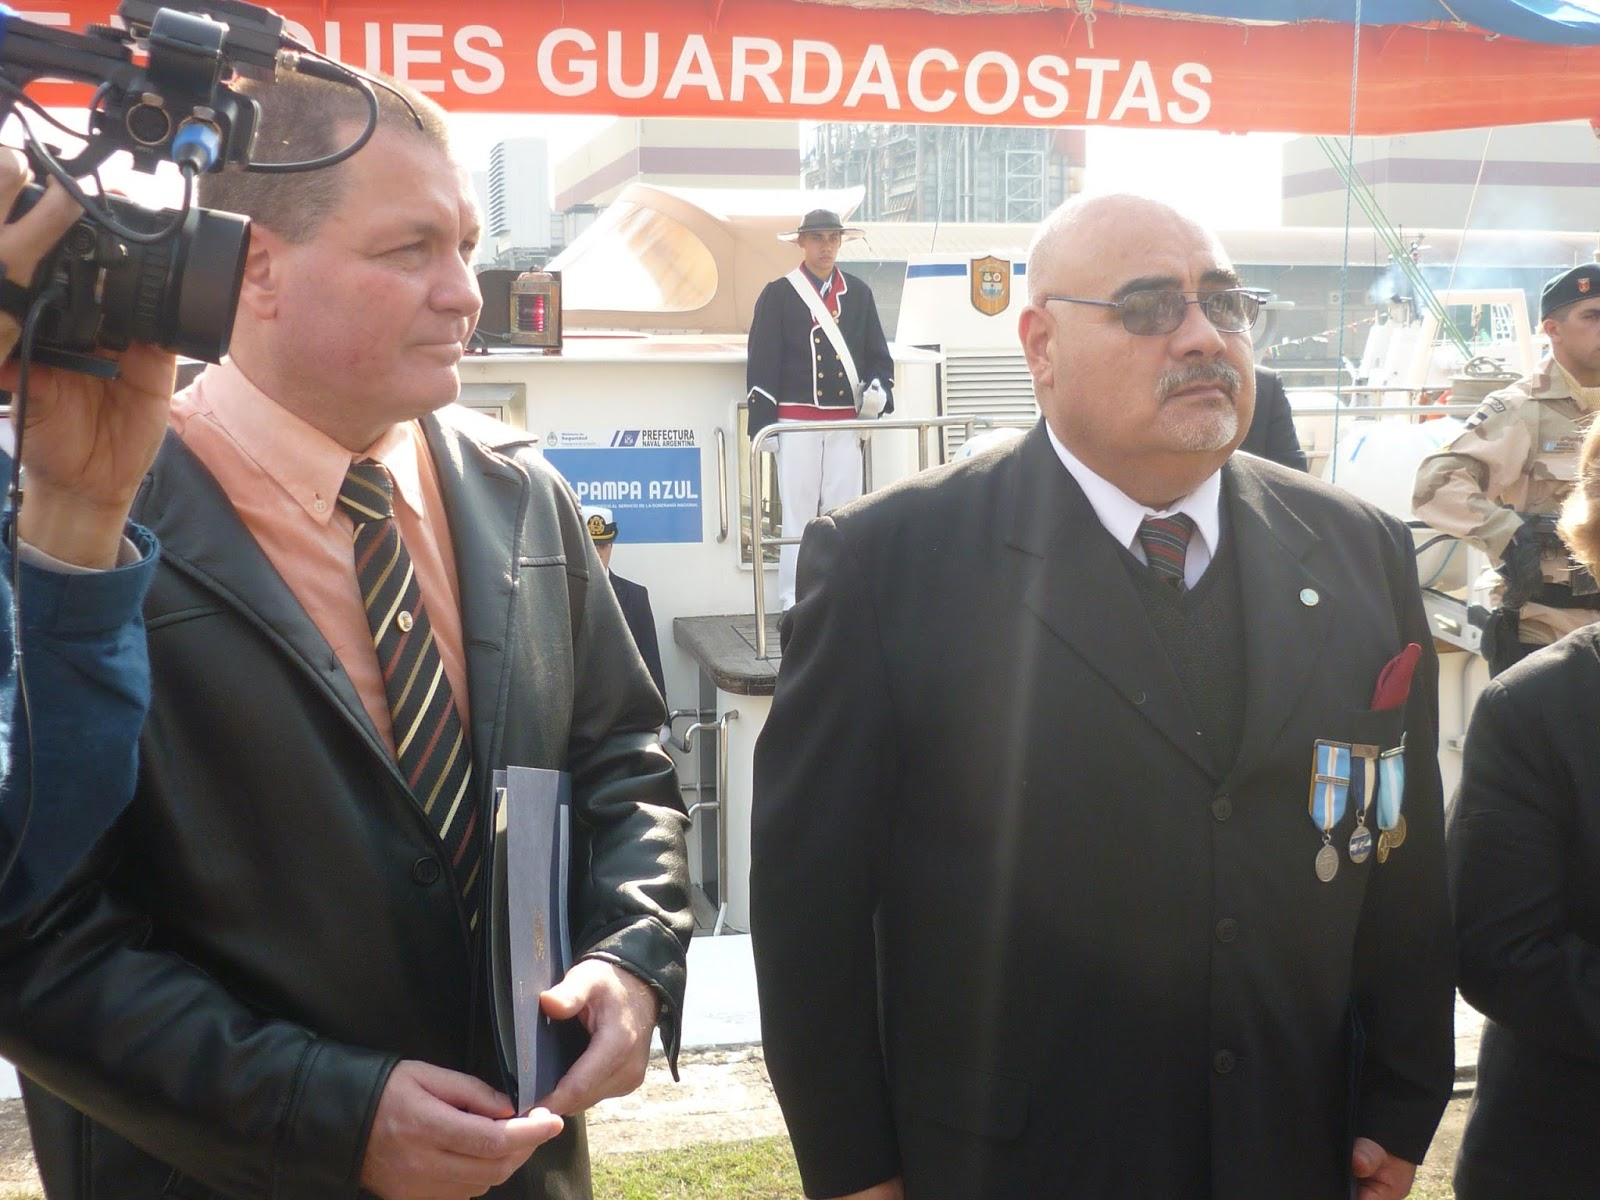 Left to Right: SMEN(RE)Roberto Borello and SIEN(RE)Oscar Guzman